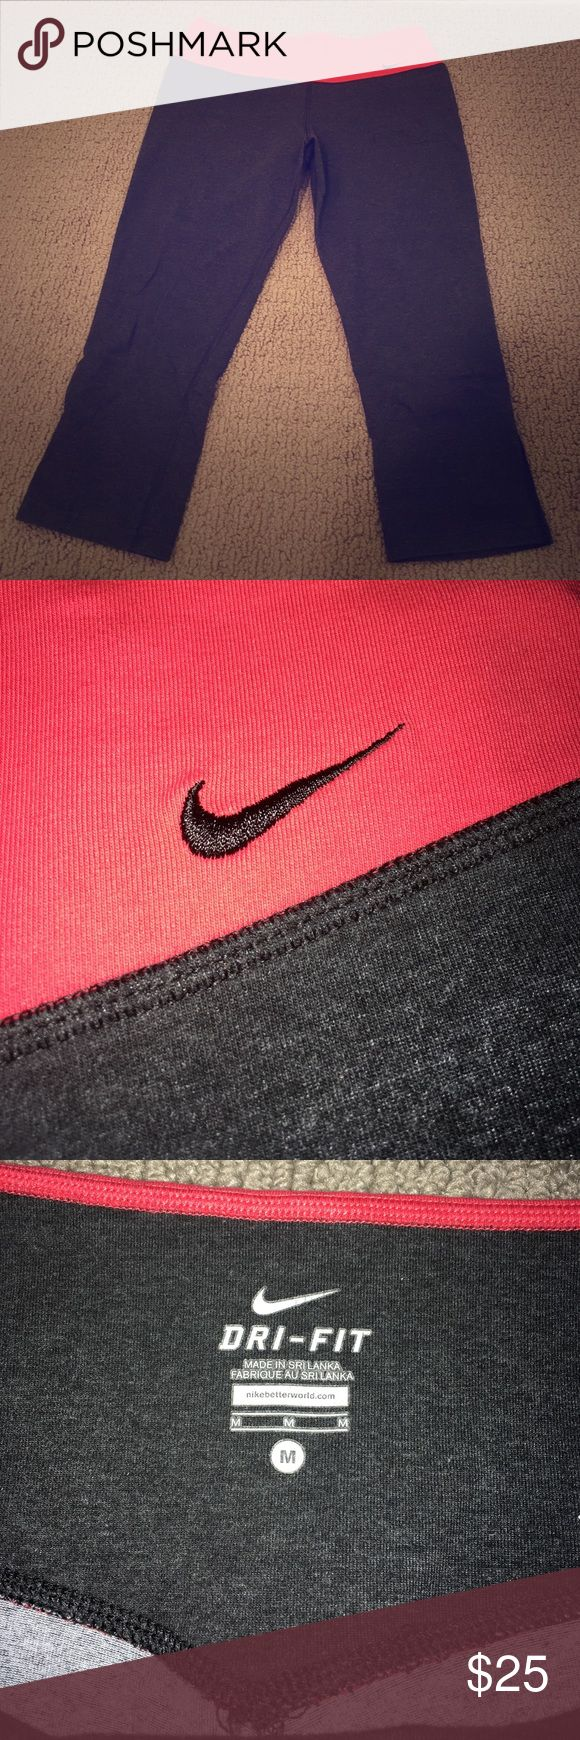 Nike Dri Fit Capris Charcoal grey w/ red waistband Nike running capris. Cottony feel, great for the gym or for lounging! Nike Pants Leggings